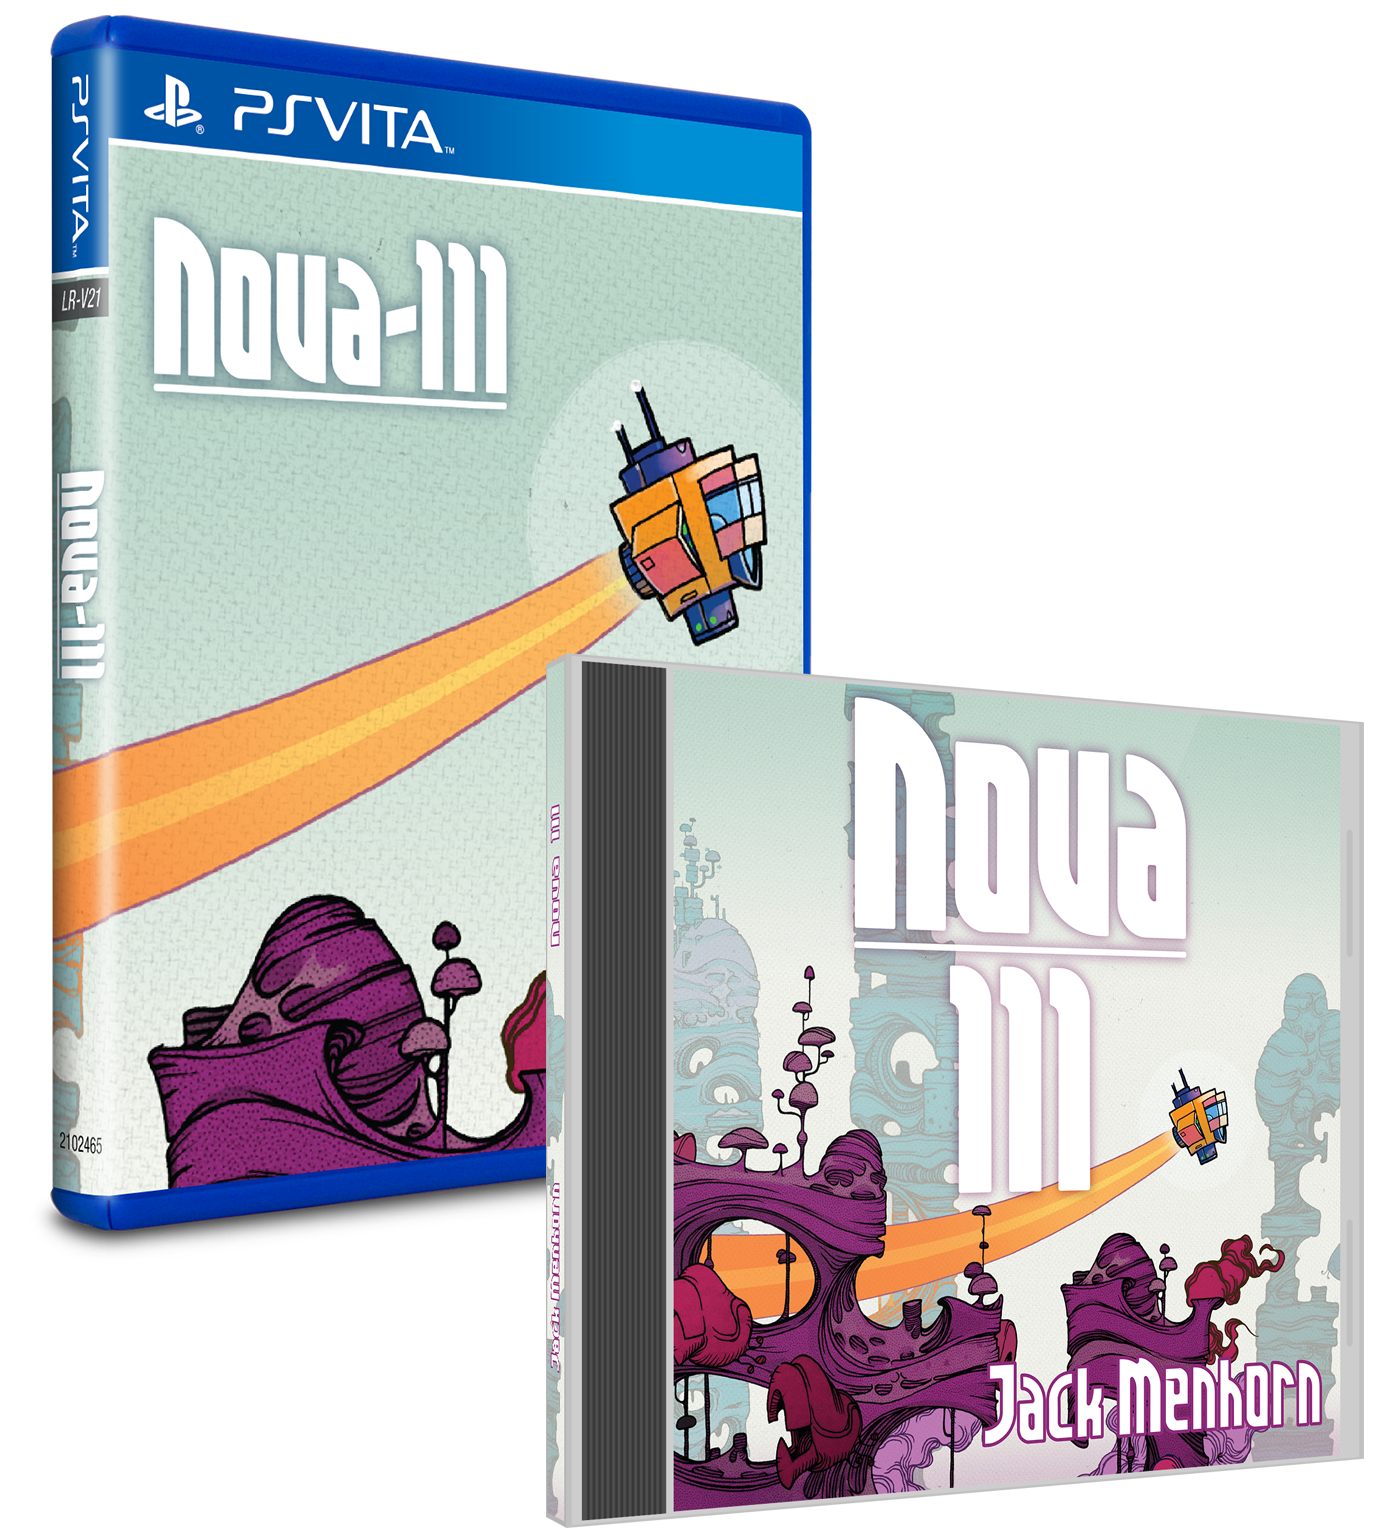 Limited Run #45: Nova-111 Soundtrack Bundle (Vita)